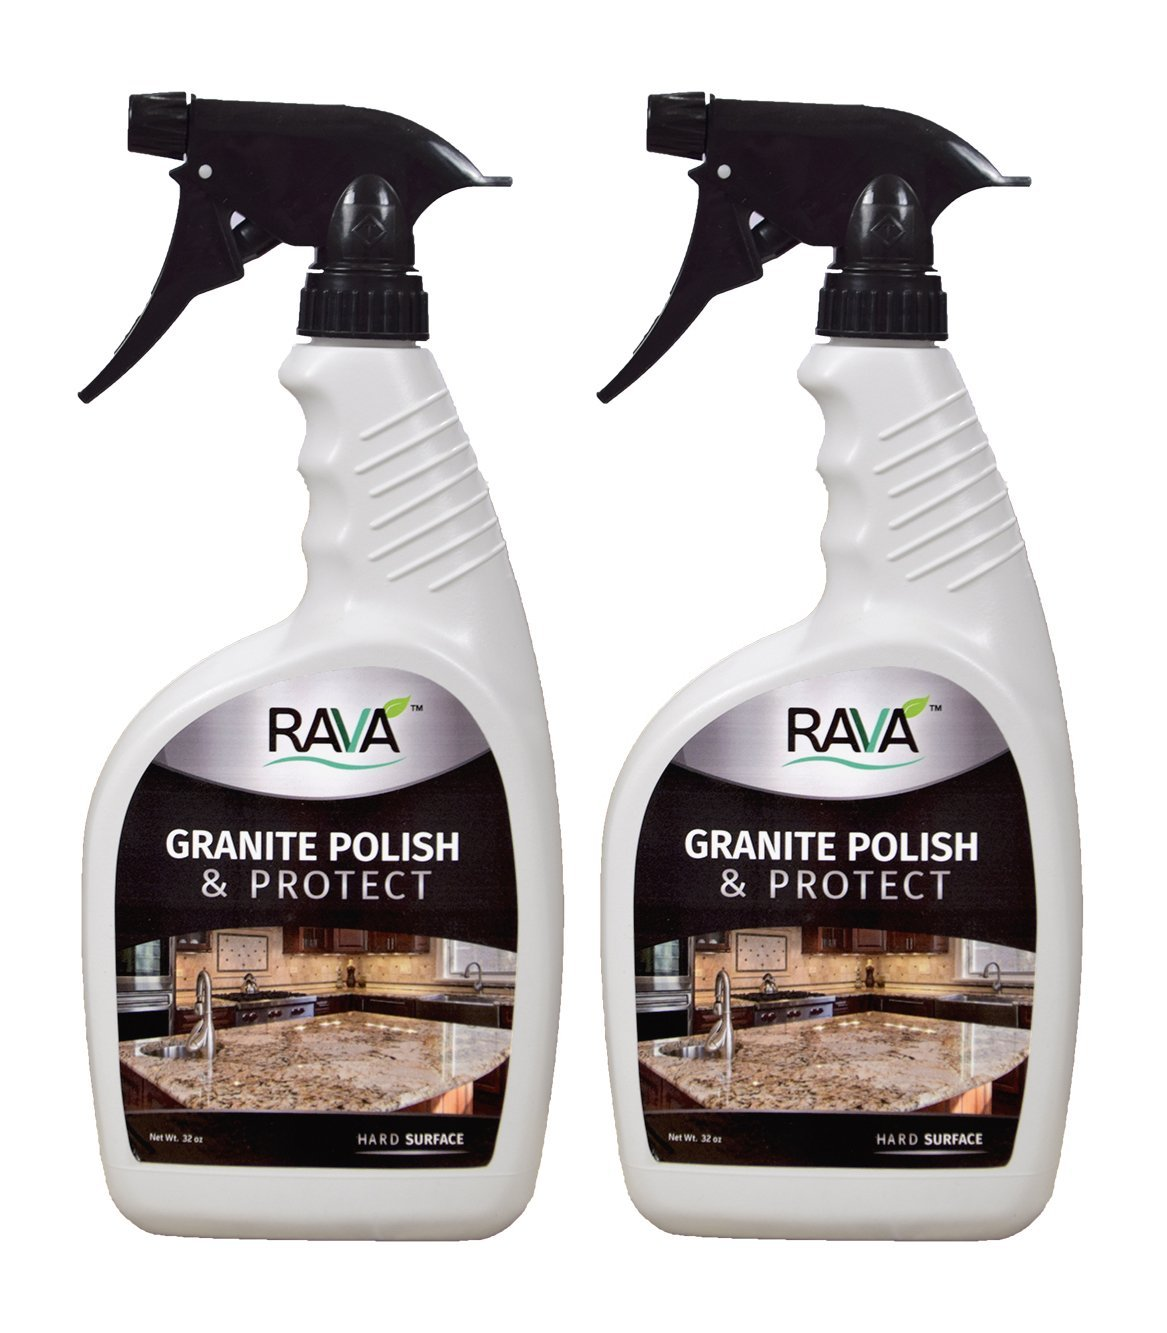 RAVA Granite Polish & Protect 32 oz Bottle 2 Pack Daily use to Clean and Shine Streak Free no Residue for Marble Granite Ceramic terrazo Quartz Stone and Simulated Stone